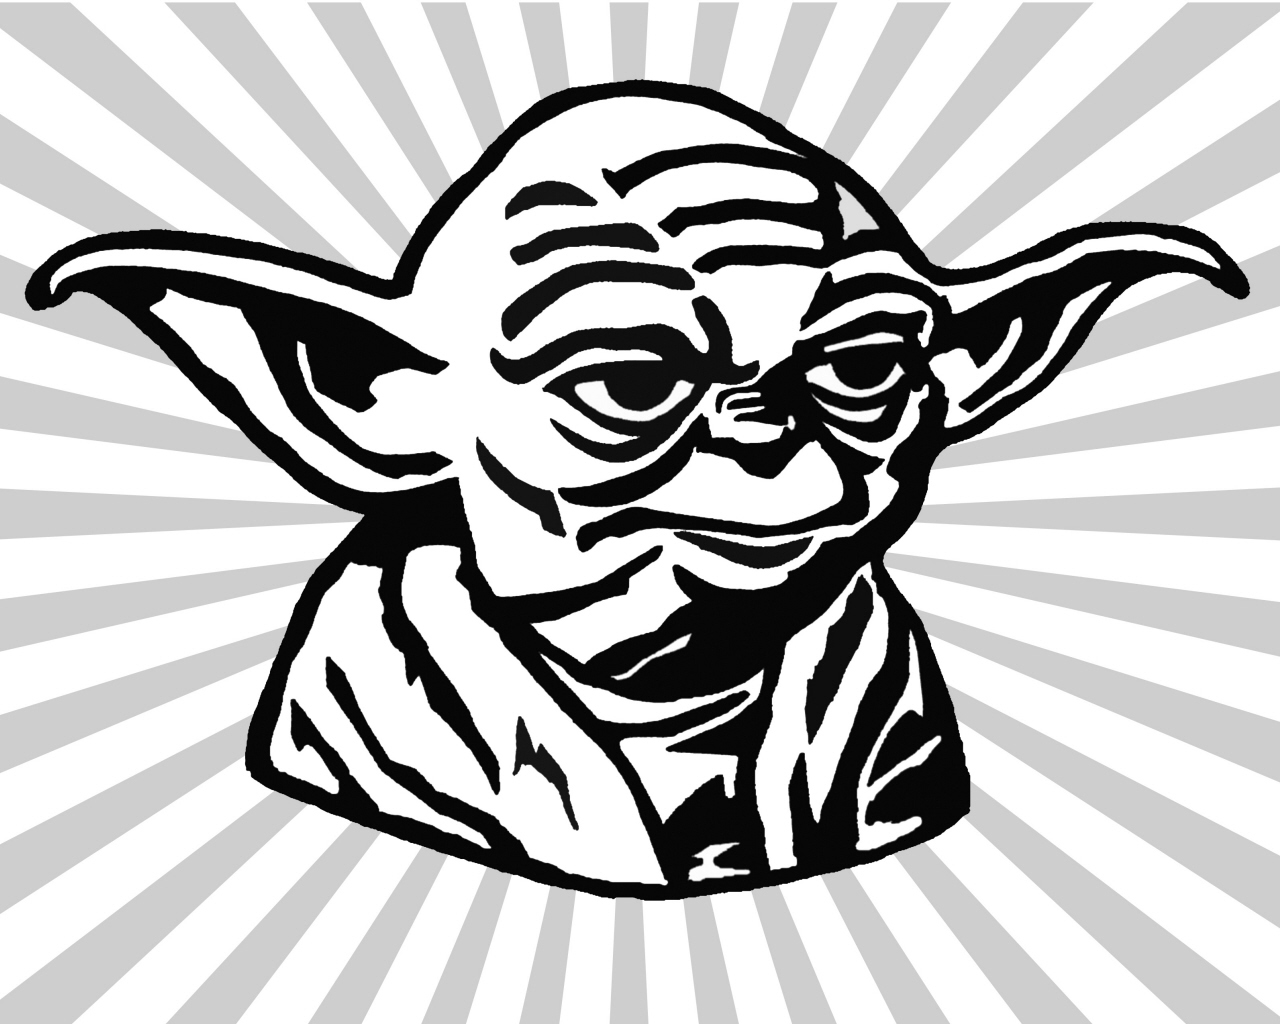 Drawn star wars head Collection Yoda draw to How